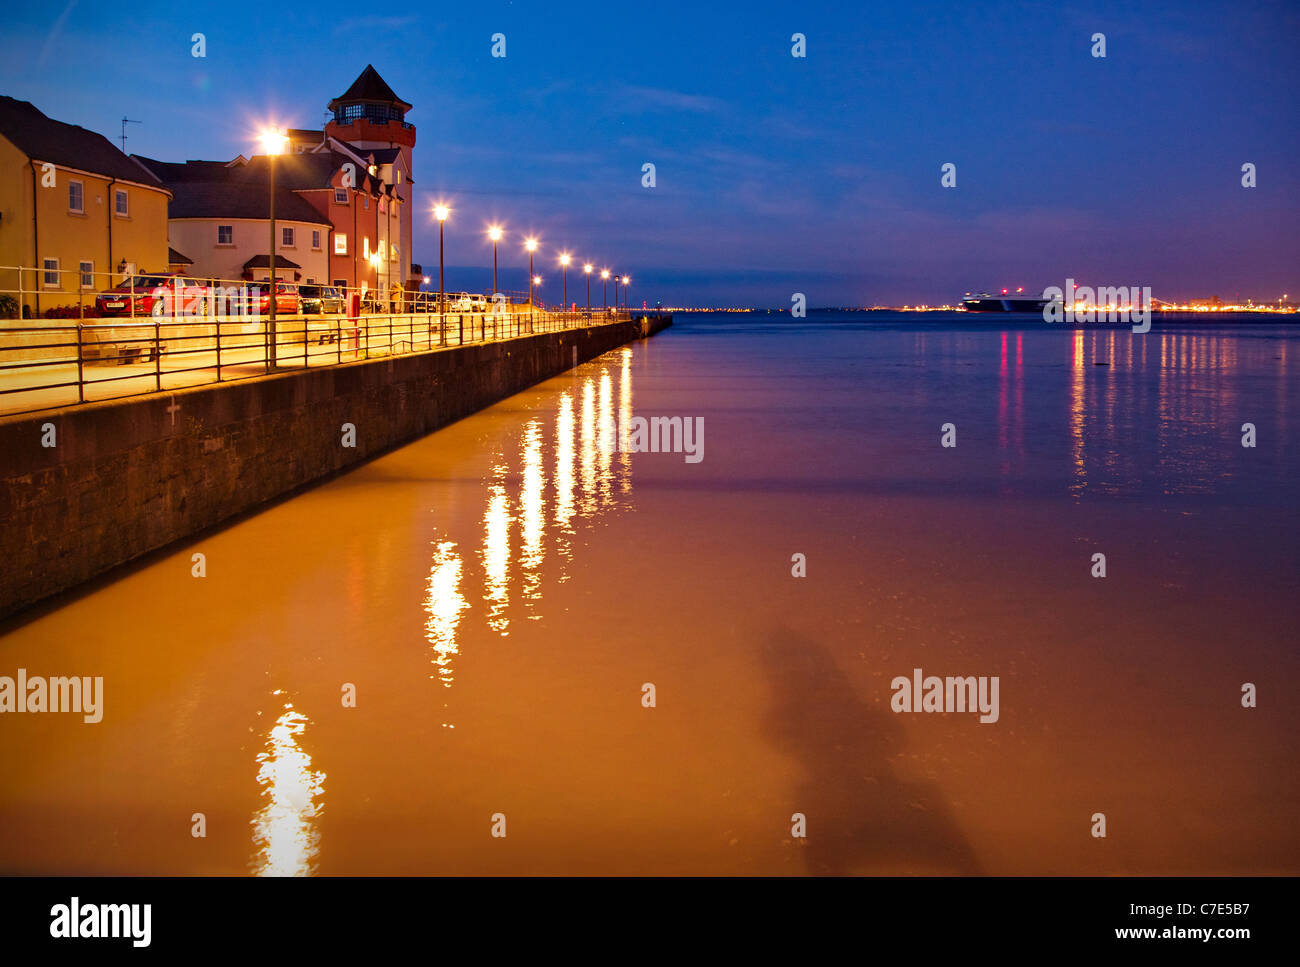 Portishead docks  and the river Severn estuary by night - Stock Image